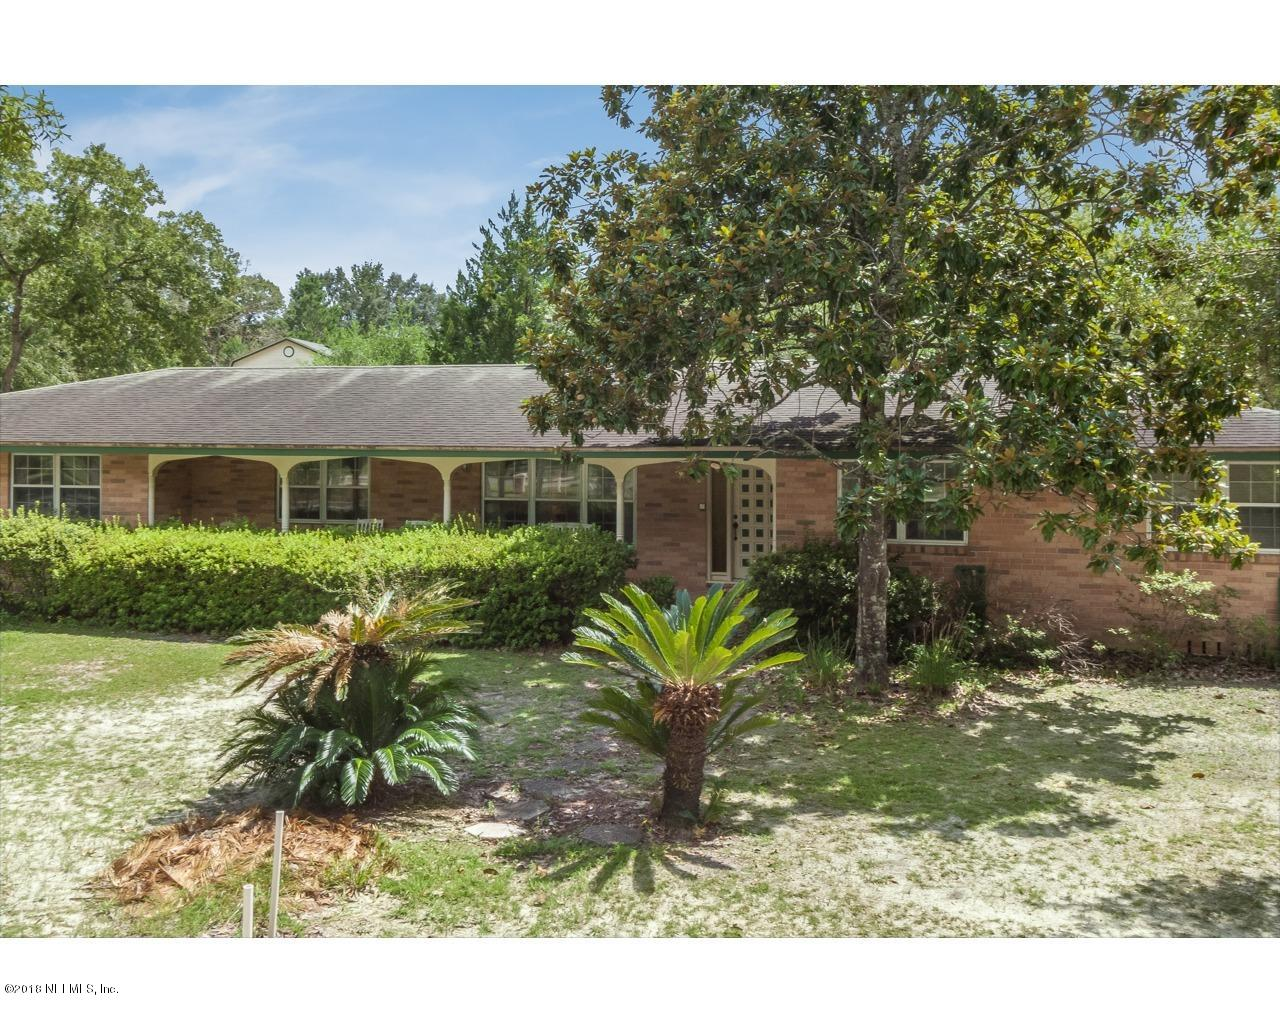 4179 MUSTANG, MIDDLEBURG, FLORIDA 32068, 3 Bedrooms Bedrooms, ,2 BathroomsBathrooms,Residential - single family,For sale,MUSTANG,953708